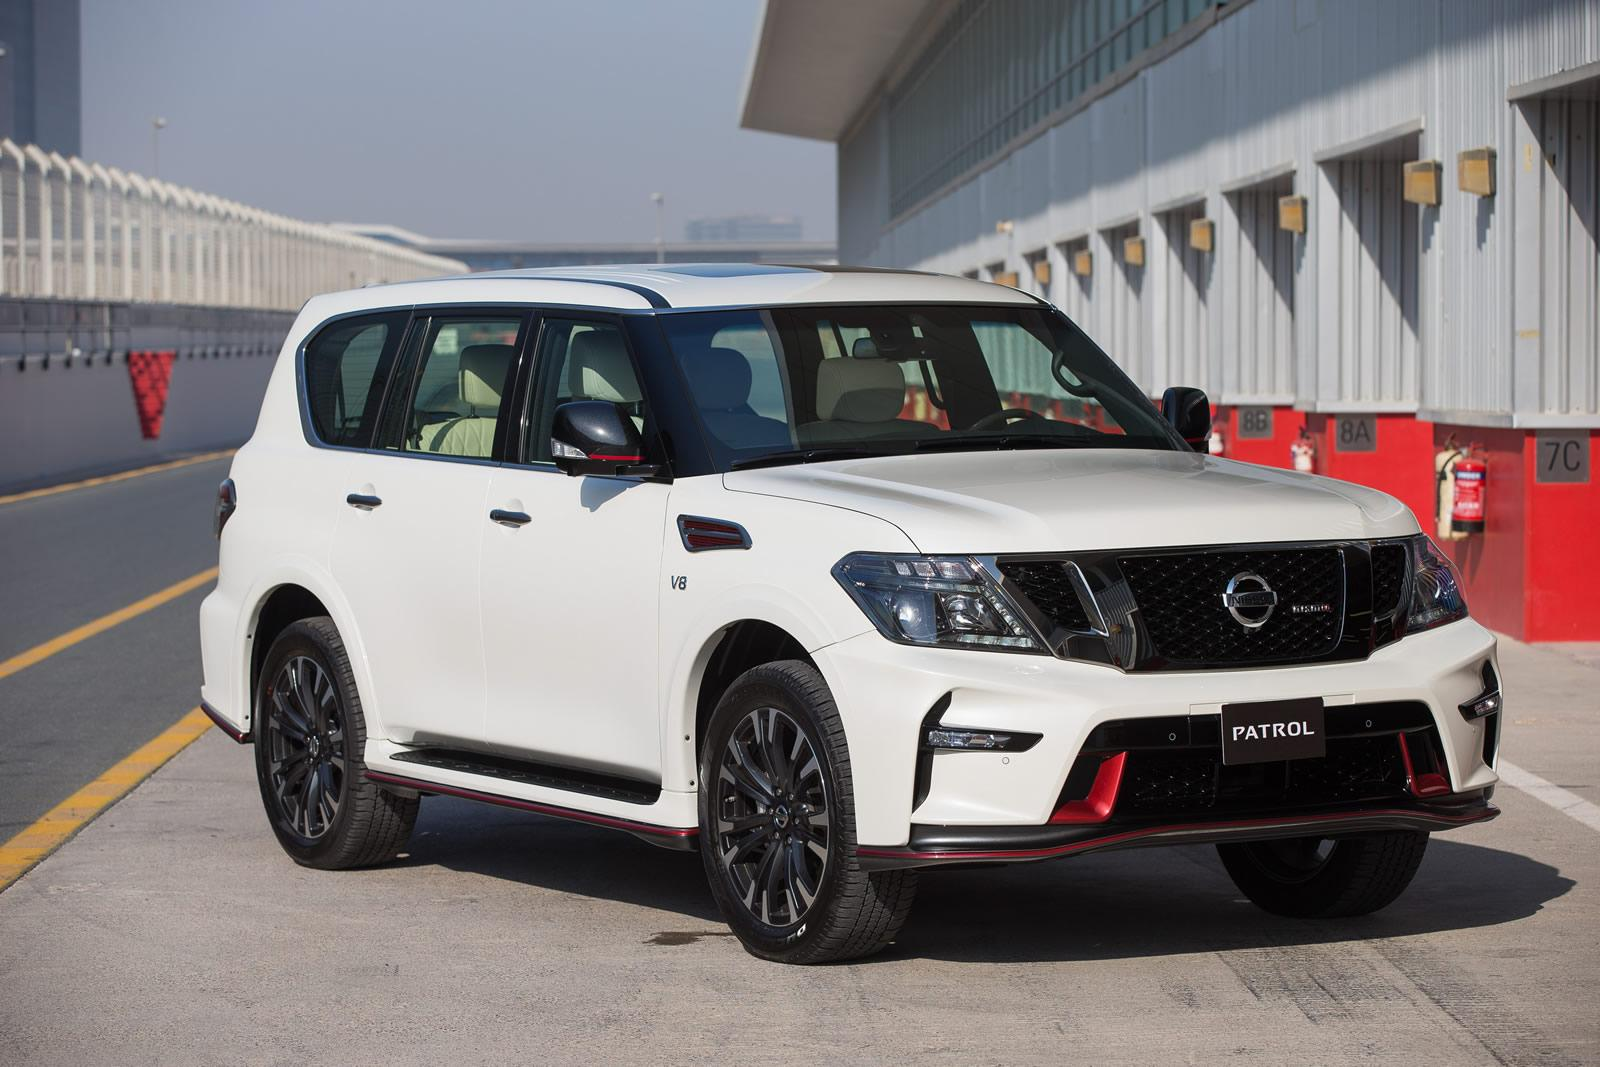 Patrol Nismo >> Nismo Reveals 428 hp Nissan Patrol for the Middle East - GTspirit